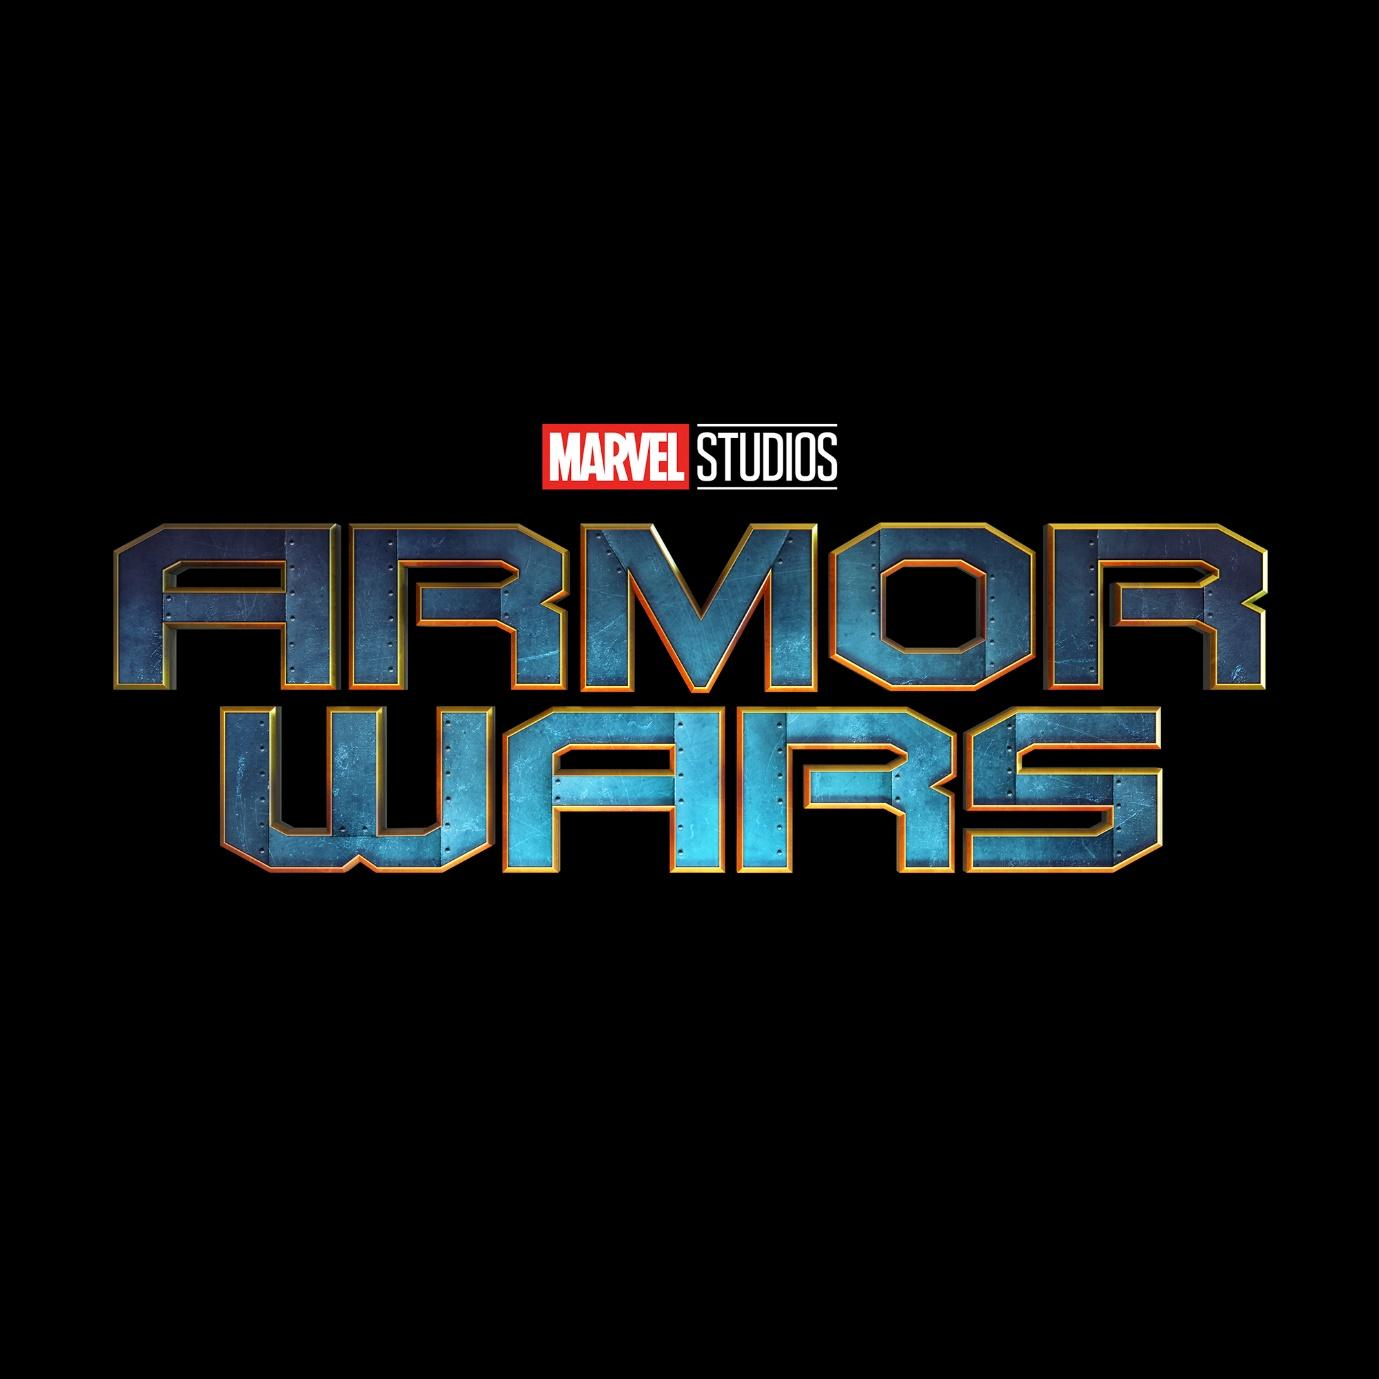 "Marvel Studios on Twitter: ""Don Cheadle returns as James Rhodes aka War  Machine in Armor Wars, an Original Series coming to #DisneyPlus. A classic  Marvel story about Tony Stark's worst fear coming"